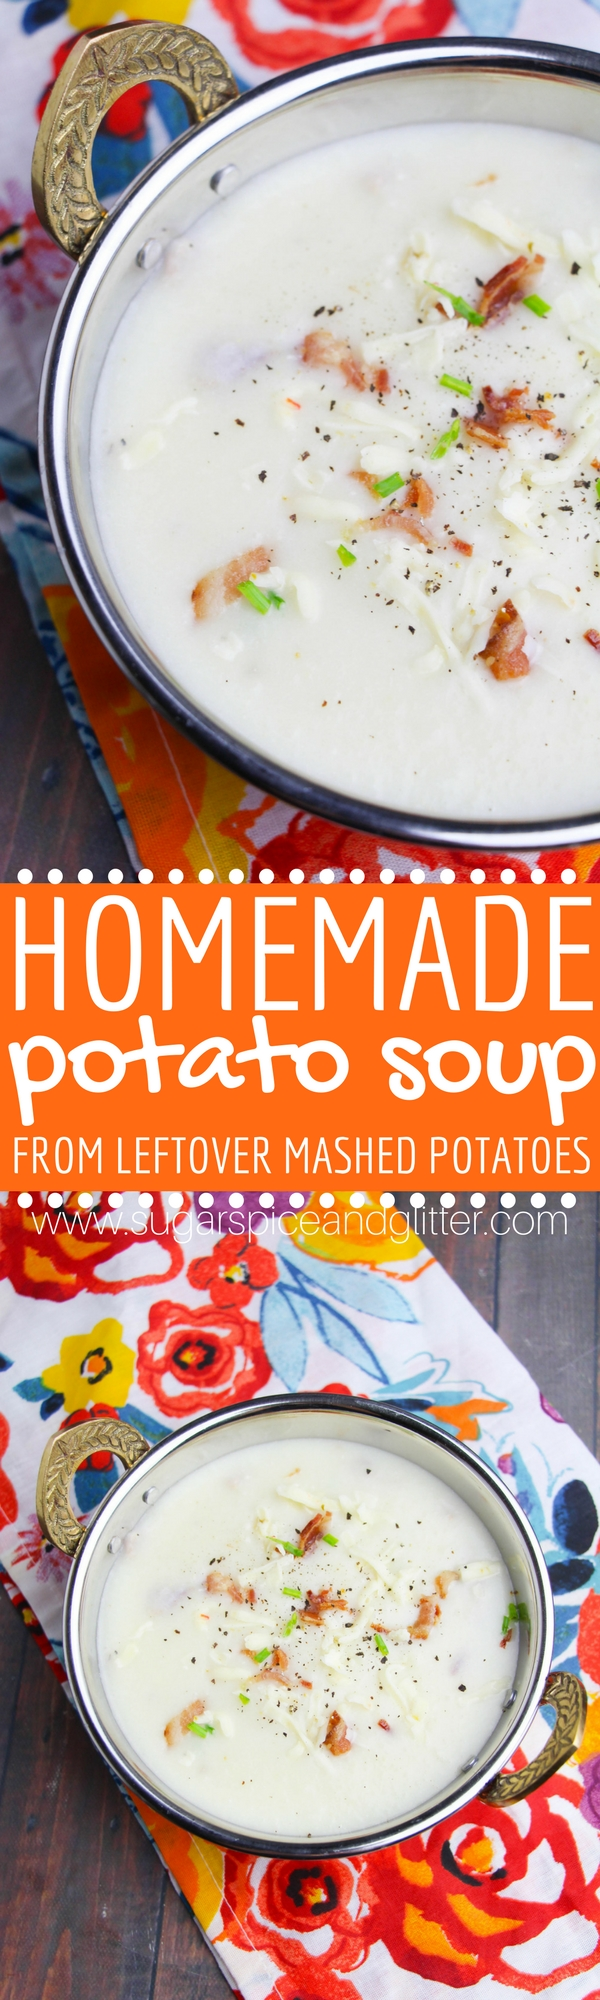 Homemade potato soup that you can make from leftover mashed potatoes. A delicious thanksgiving appetizer or a way to use up thanksgiving leftovers. Not only is this homemade potato soup tastier than the canned version, it's cheaper to make a giant batch of it and you can add in whatever mix-ins you want.